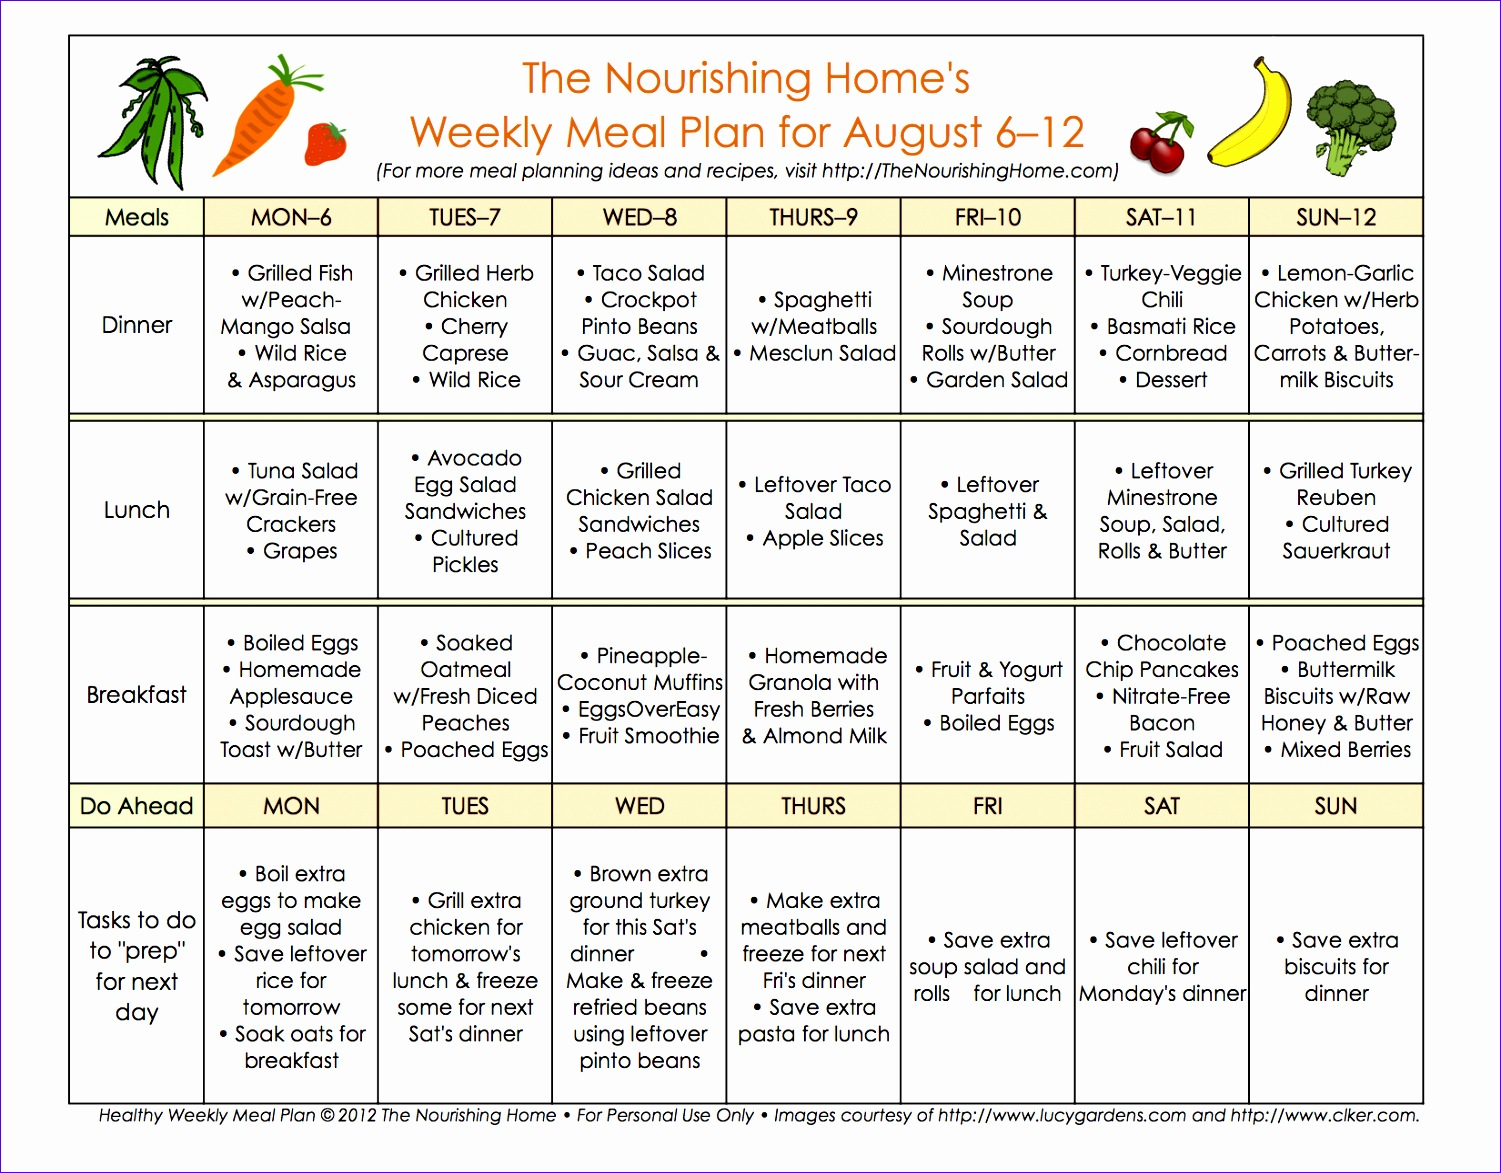 bi weekly meal plan for august 6 19